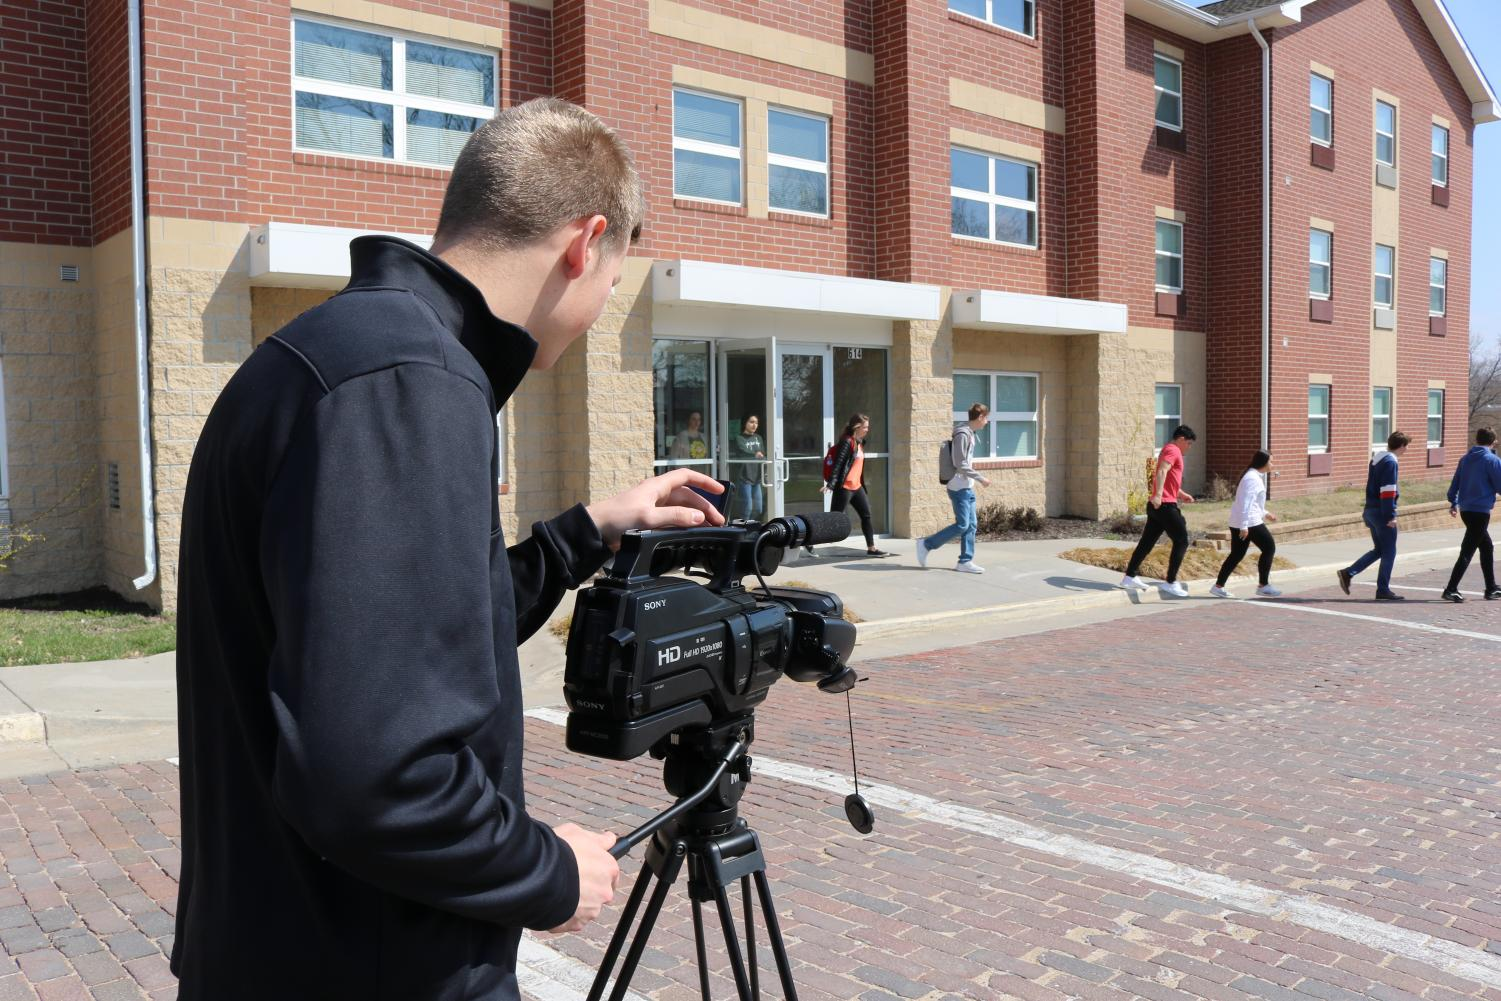 Freshman Adam Cook aims the camera at video participants. An average of 15 students were involved with each campus safety short film production.